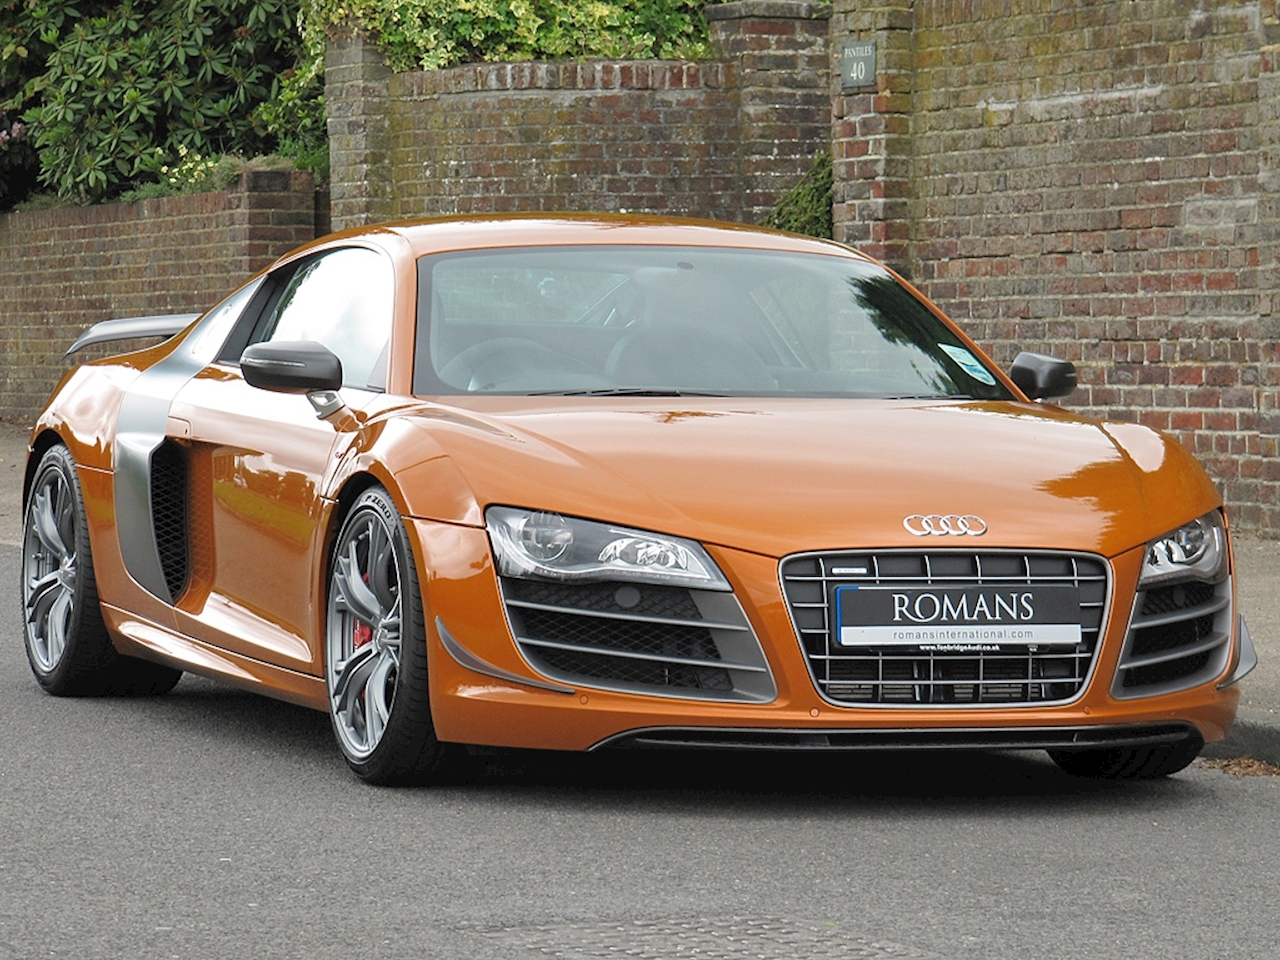 2011 used audi r8 gt quattro samoa orange. Black Bedroom Furniture Sets. Home Design Ideas